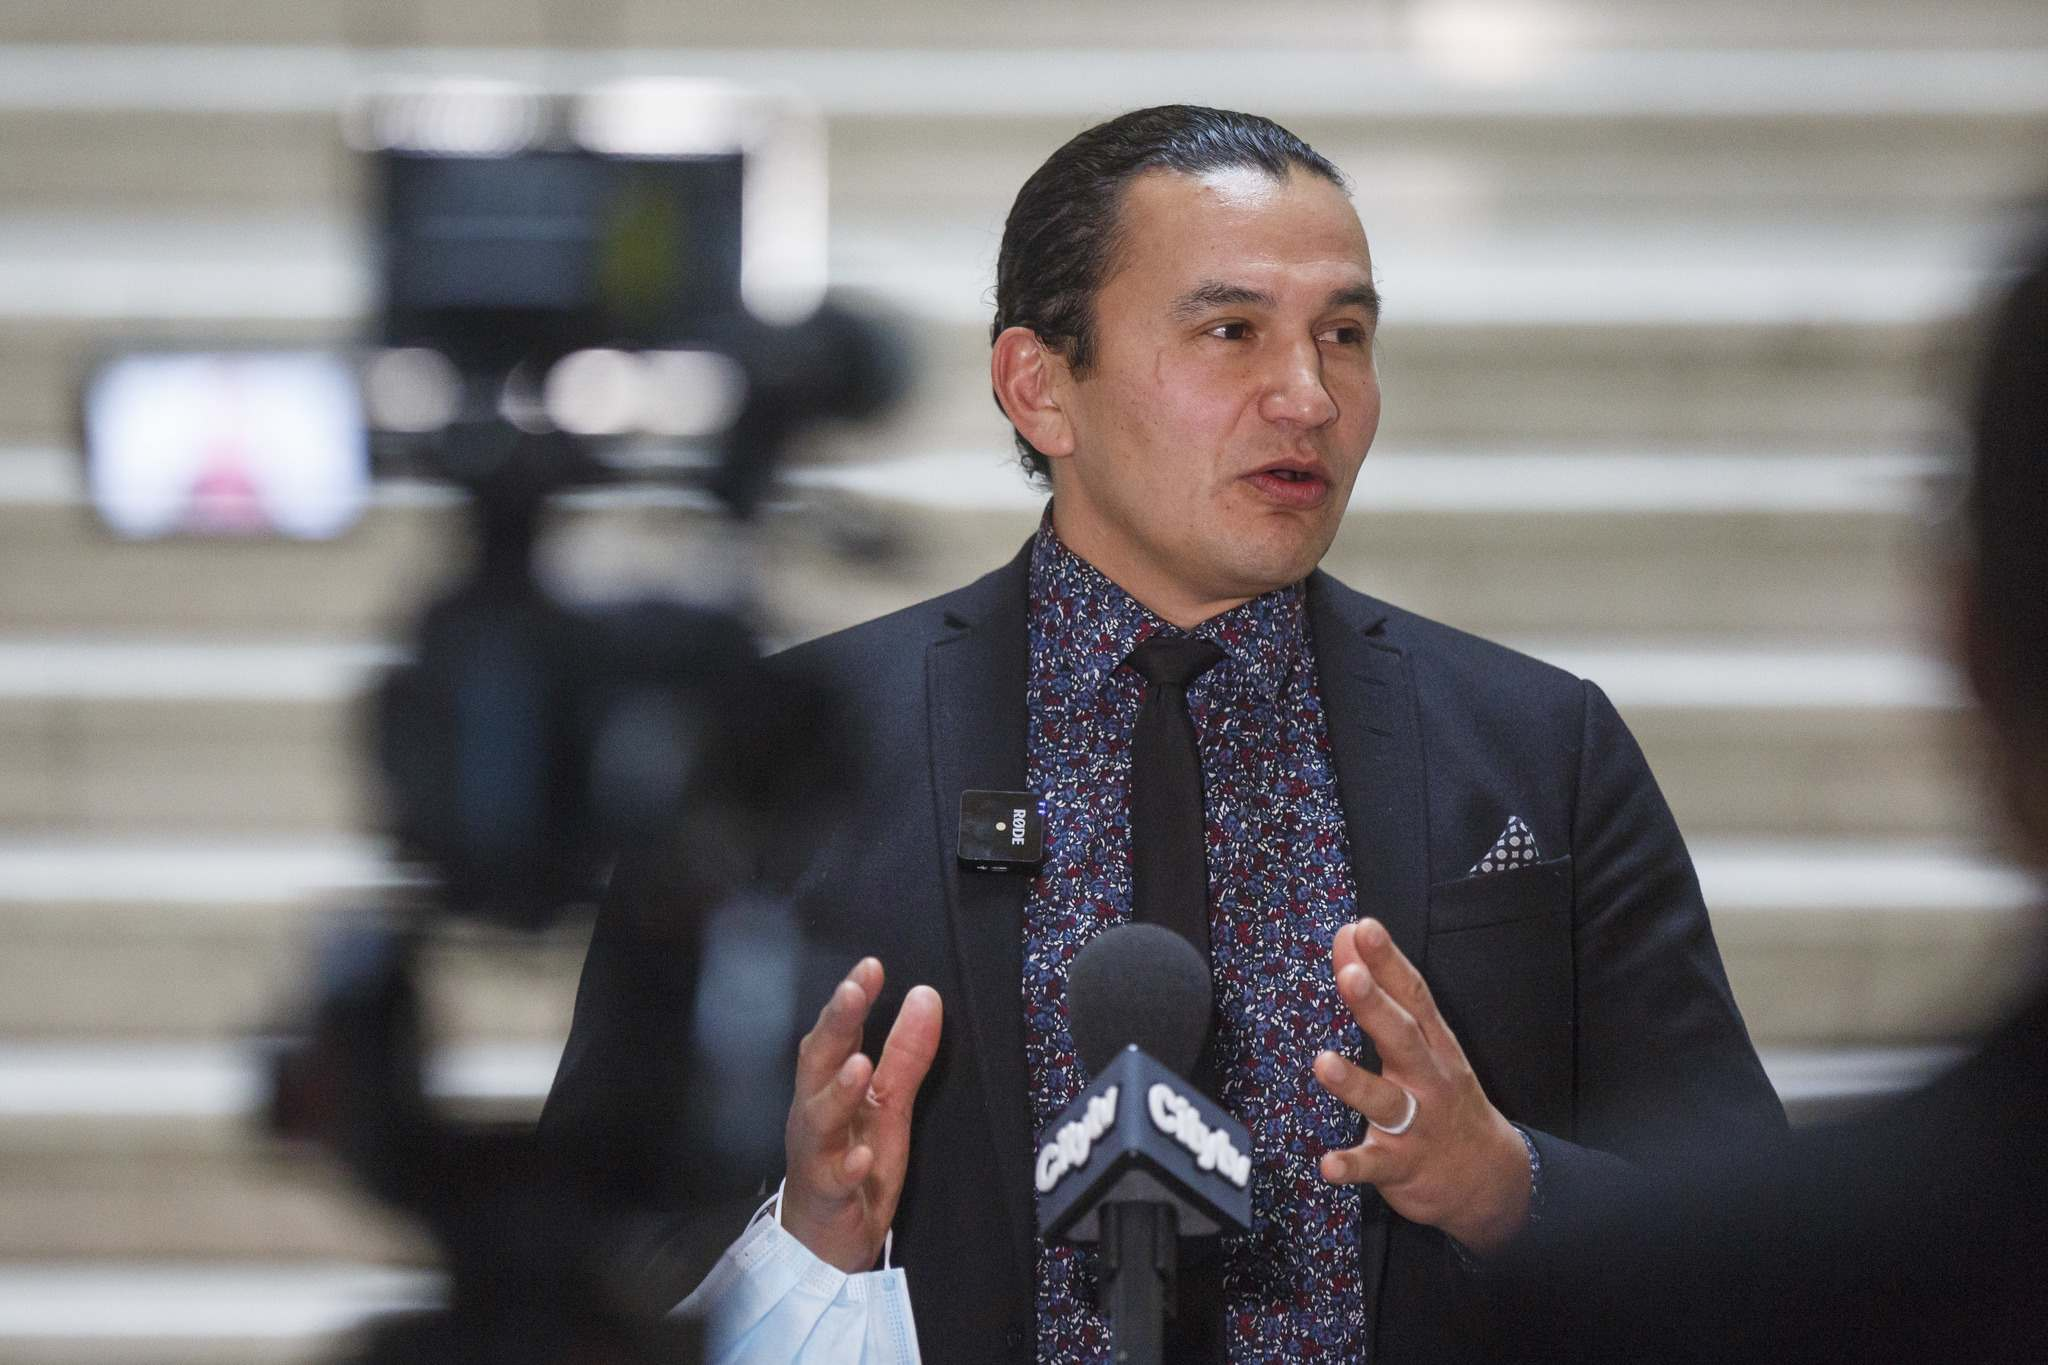 MIKE DEAL / FREE PRESS FILES  NDP Opposition Leader Wab Kinew speaks to the media after question period in the Manitoba Legislative Building.